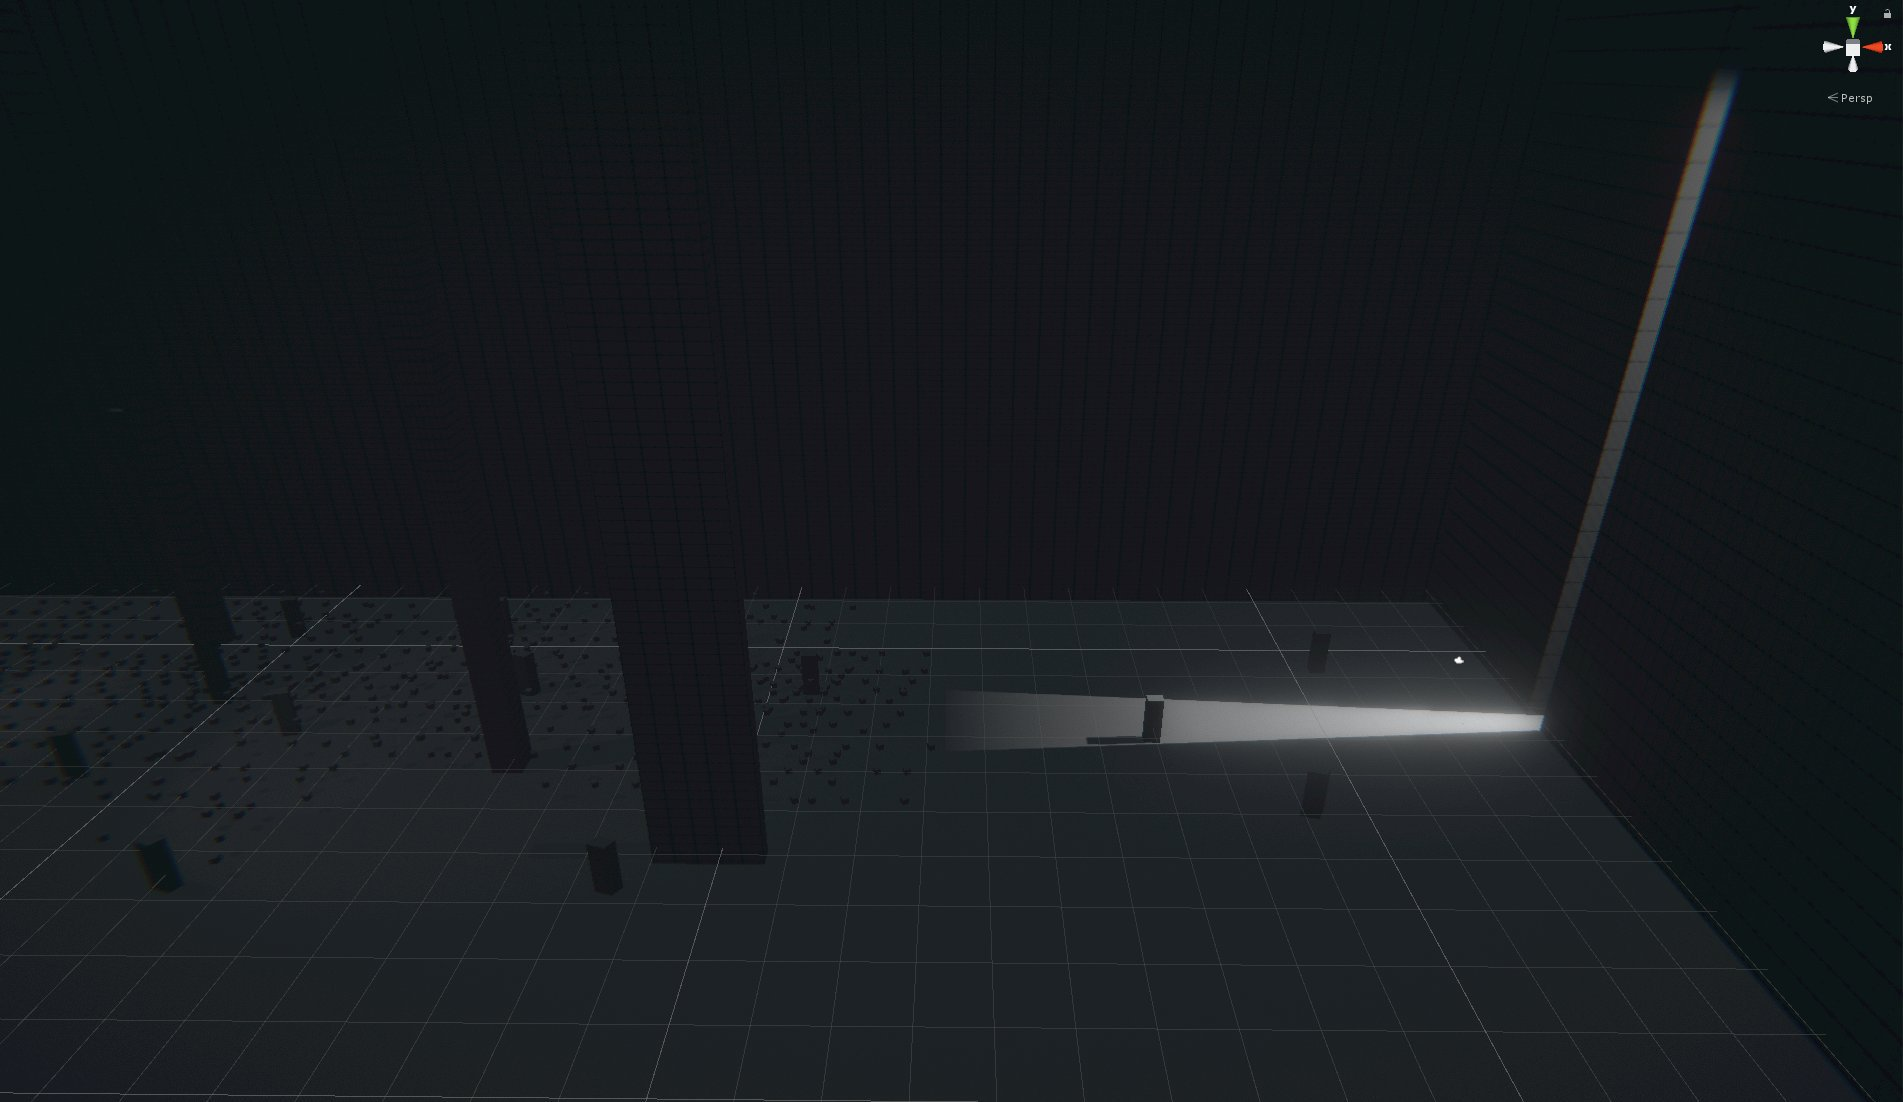 Second revision of the intro level